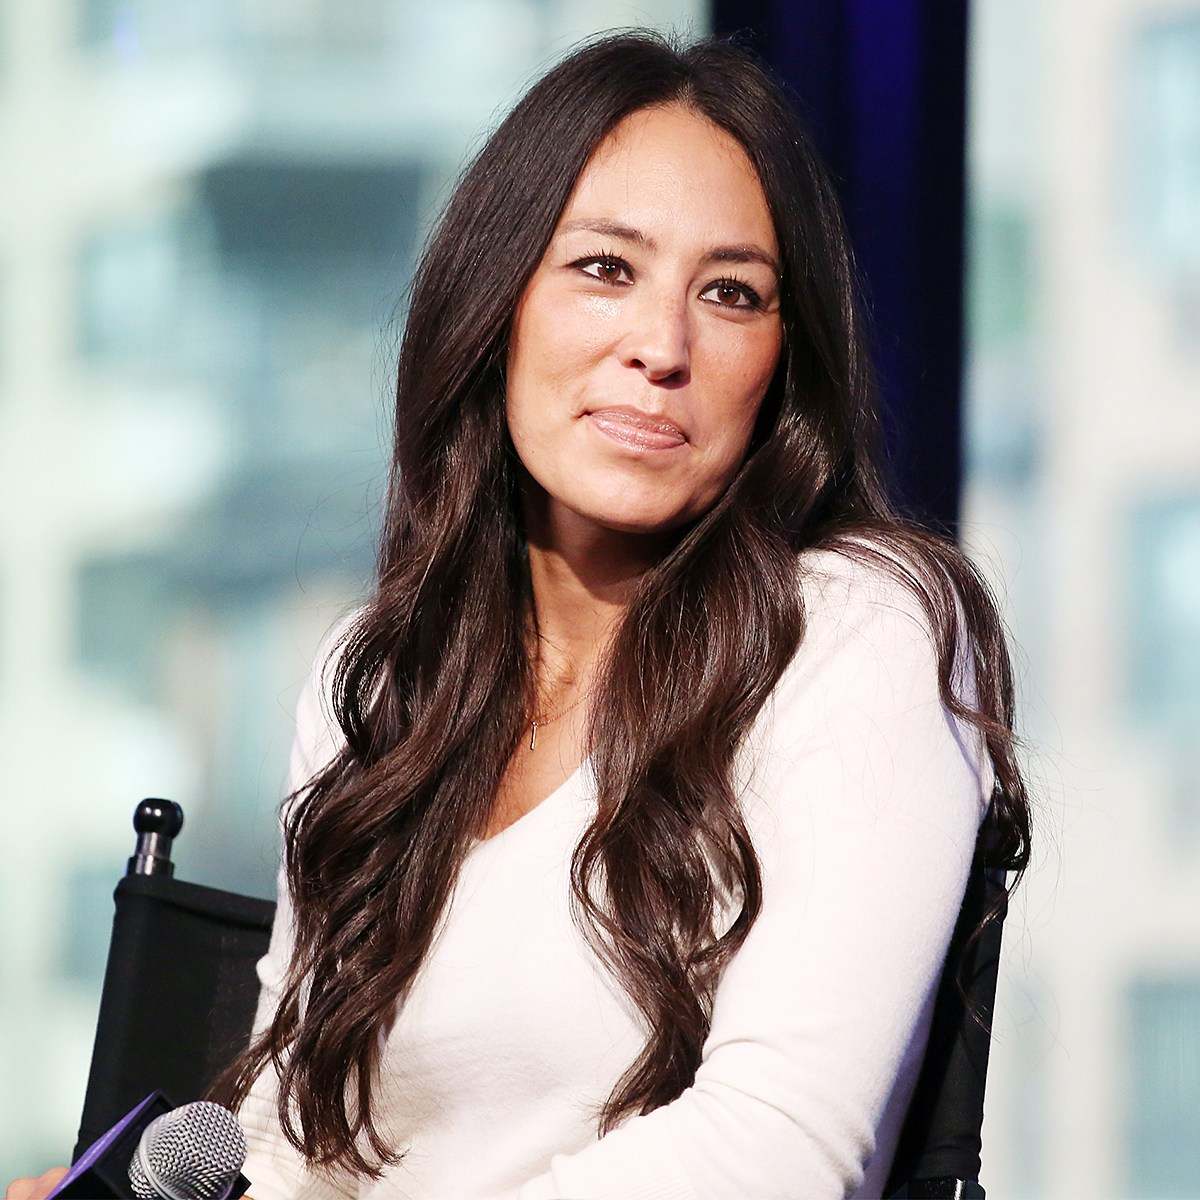 Joanna Gaines Reveals She Was Bullied